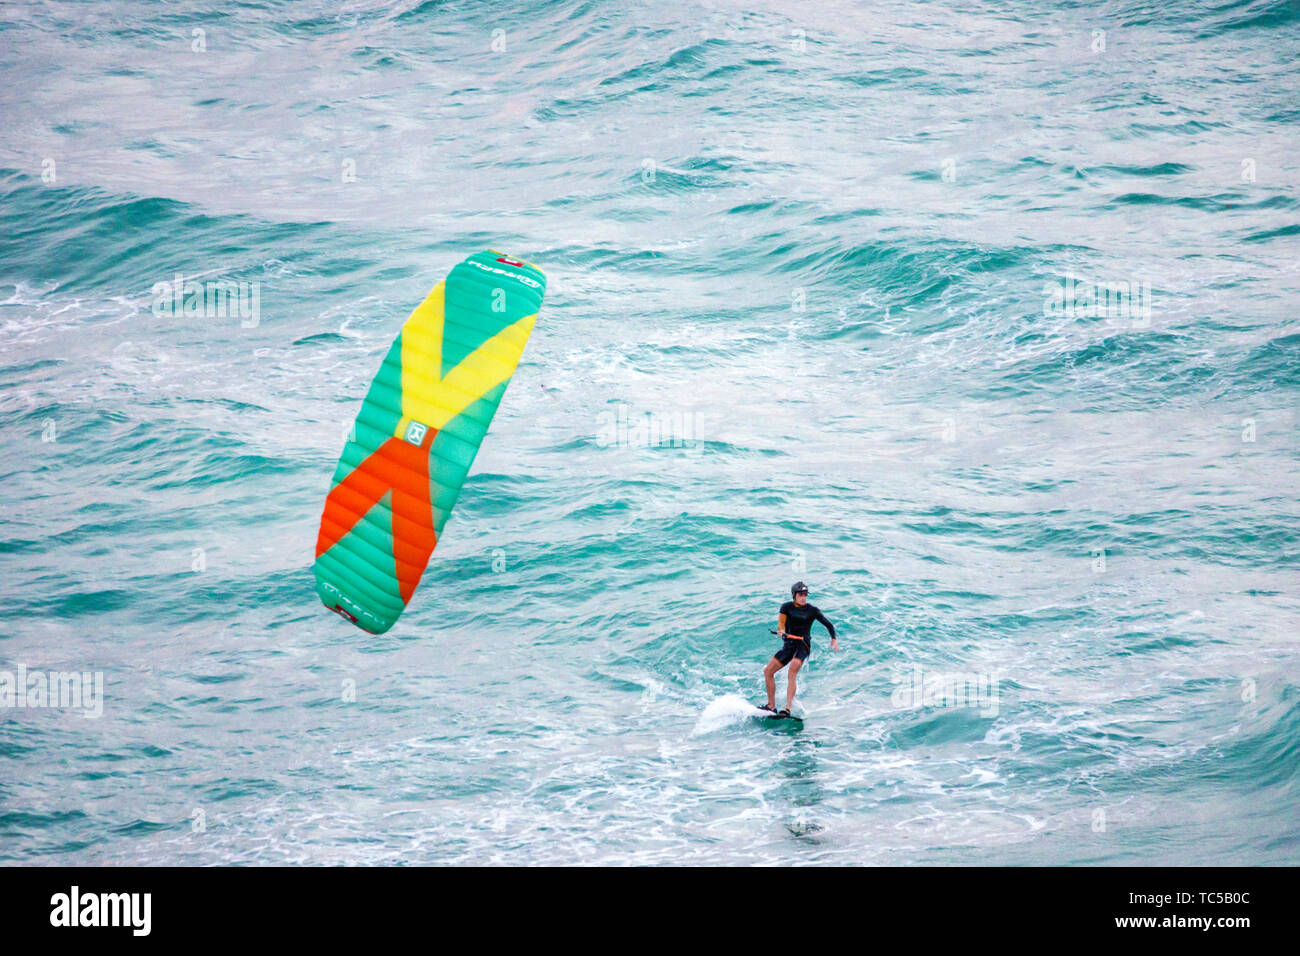 Miami Beach Florida Atlantic Ocean kiteboarding kiteboarder kitesurfing kitesurfer watersports man waves water - Stock Image